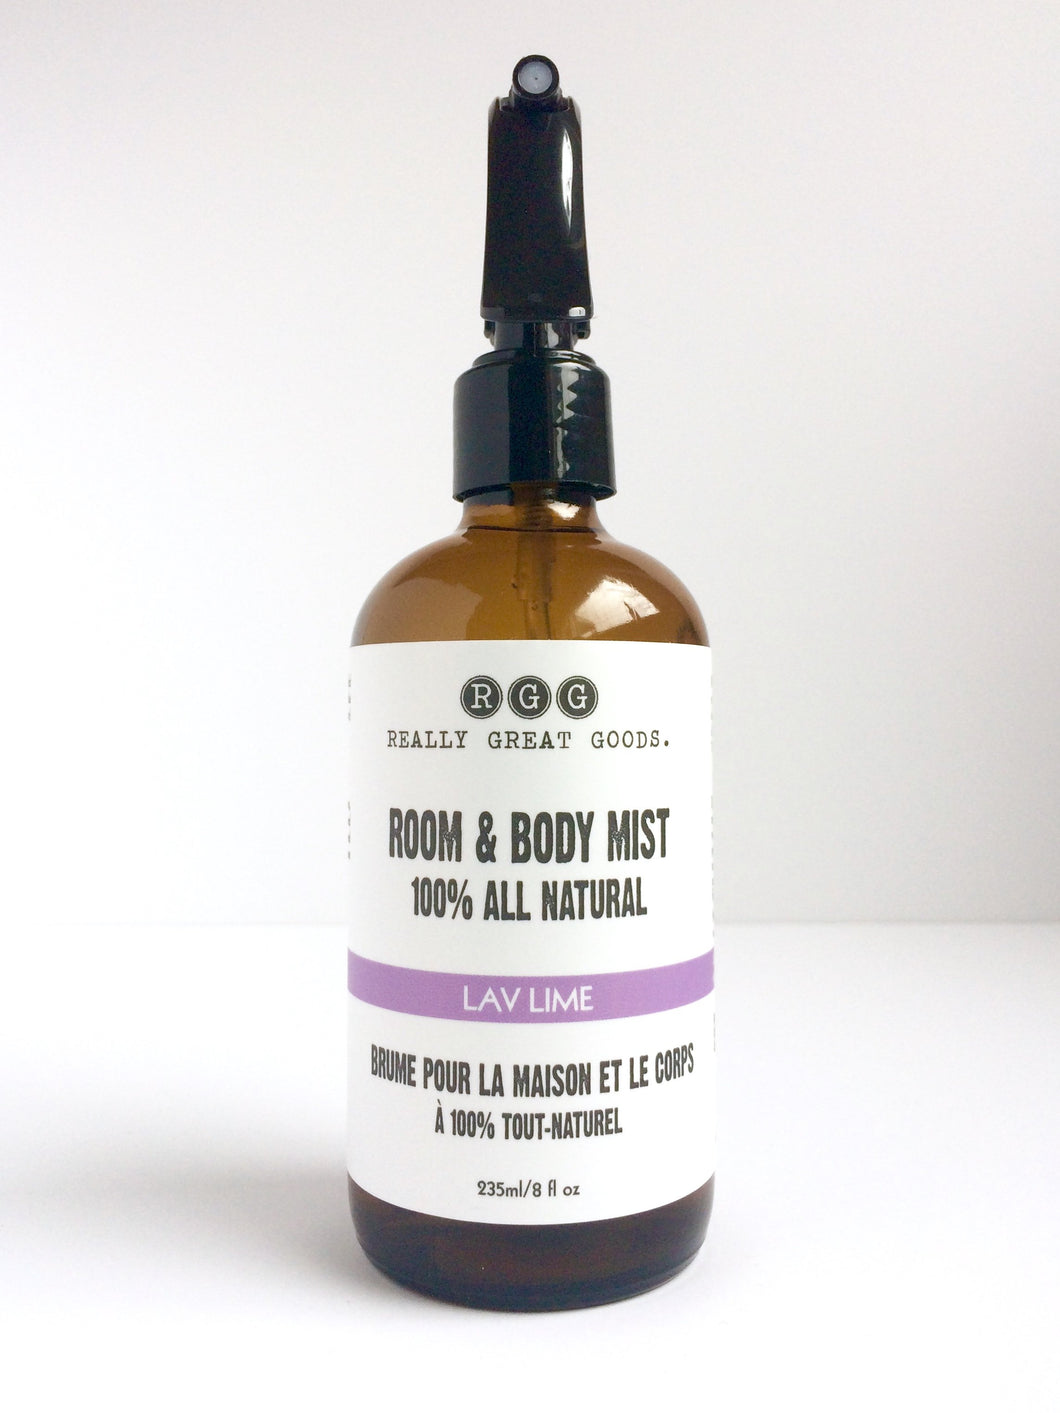 Lav Lime Organic Room & Body Mist from Really Great Goods.  Handmade, Small Batch, All Natural, Vegan Bath and Body Care